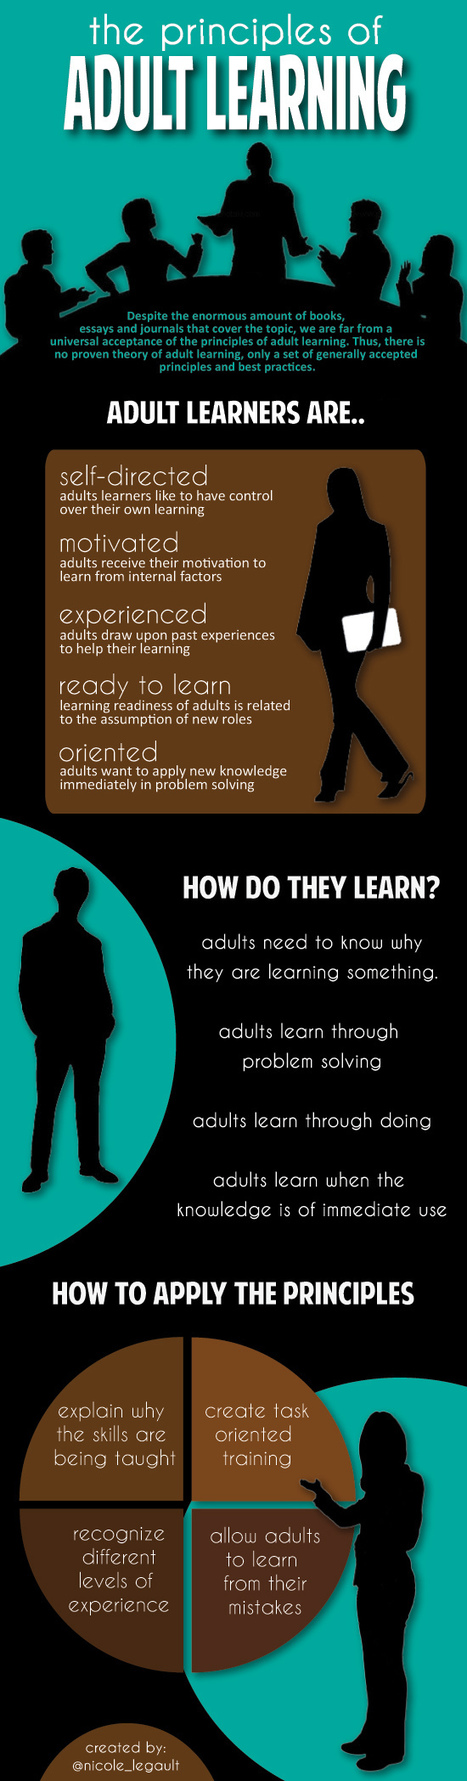 [INFOGRAPHIC] An Overview of the Principles of Adult Learning | Using Technology in the Classroom | Scoop.it